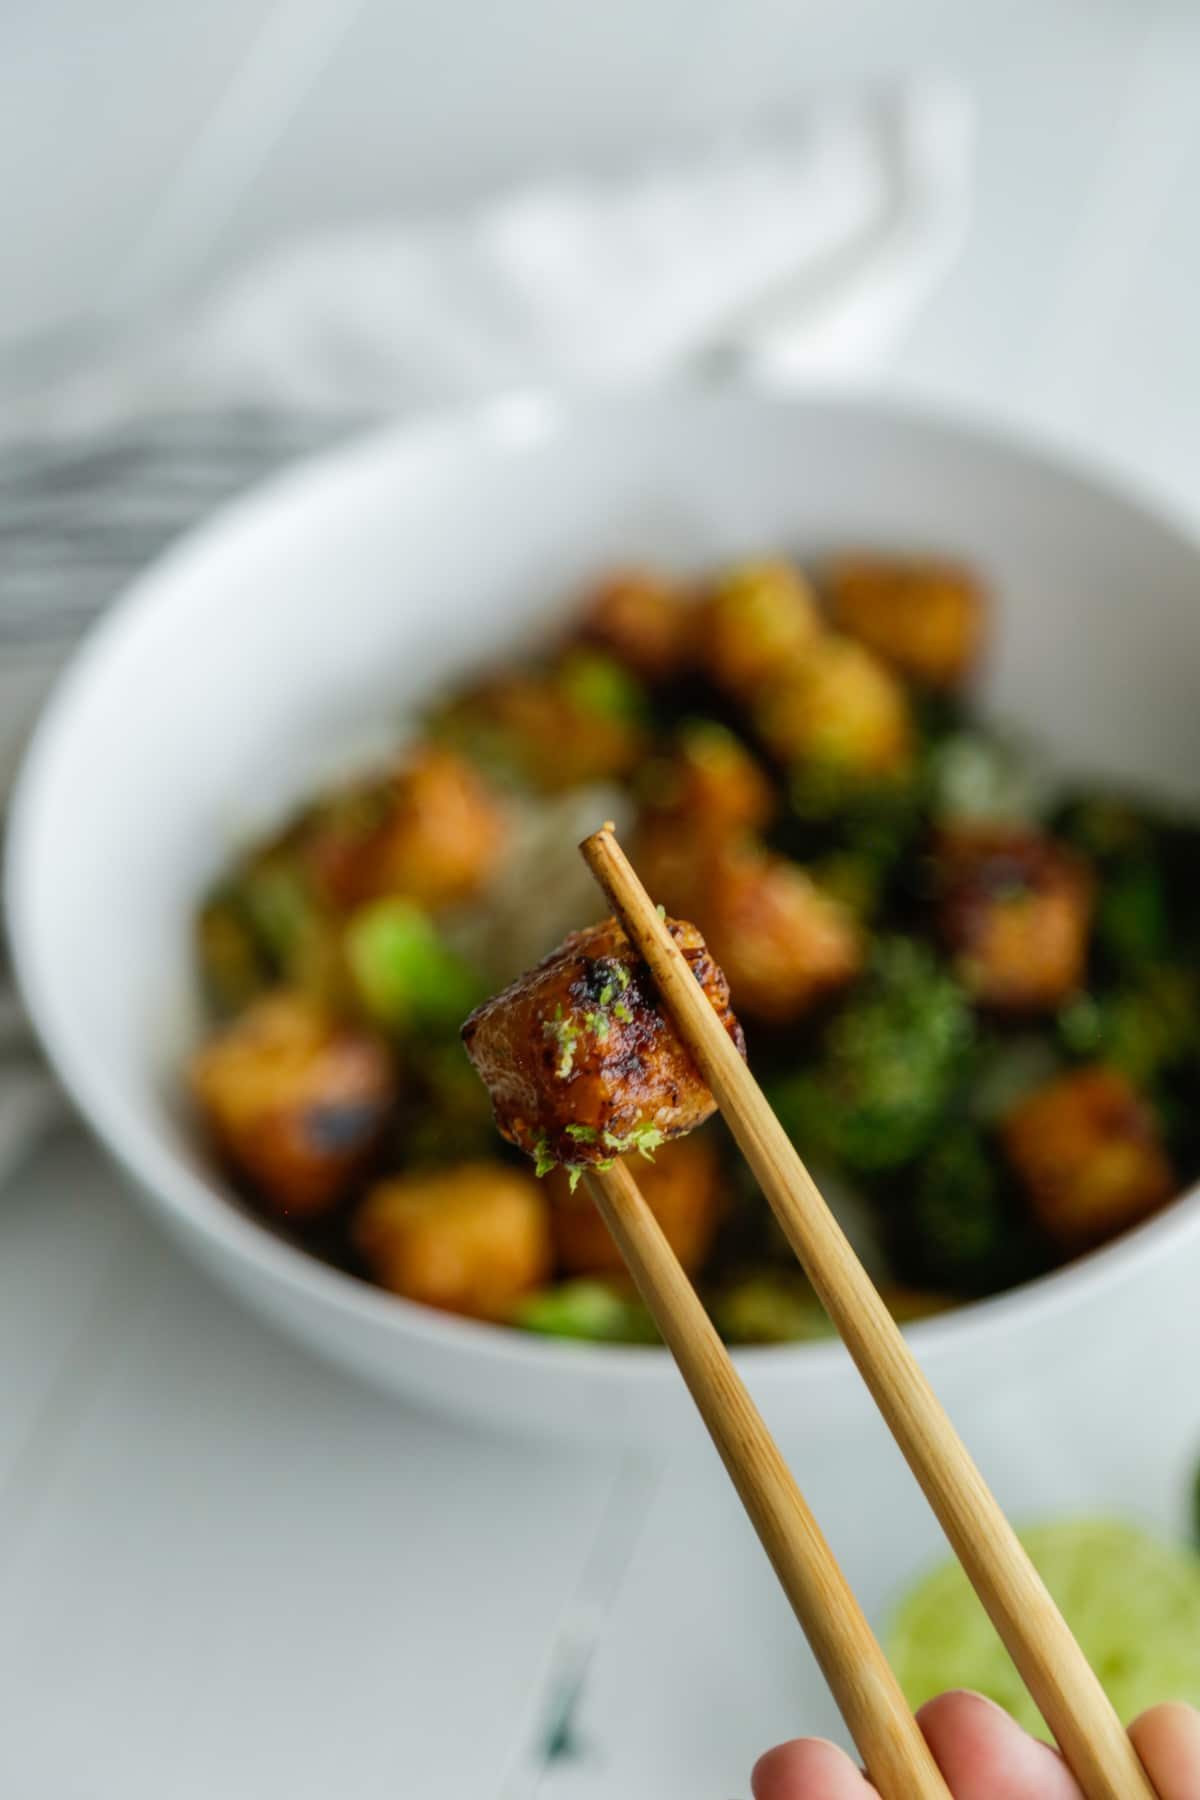 A pair of chopsticks holding a piece of tofu over a white bowl filled with the tofu, broccoli, and rice.